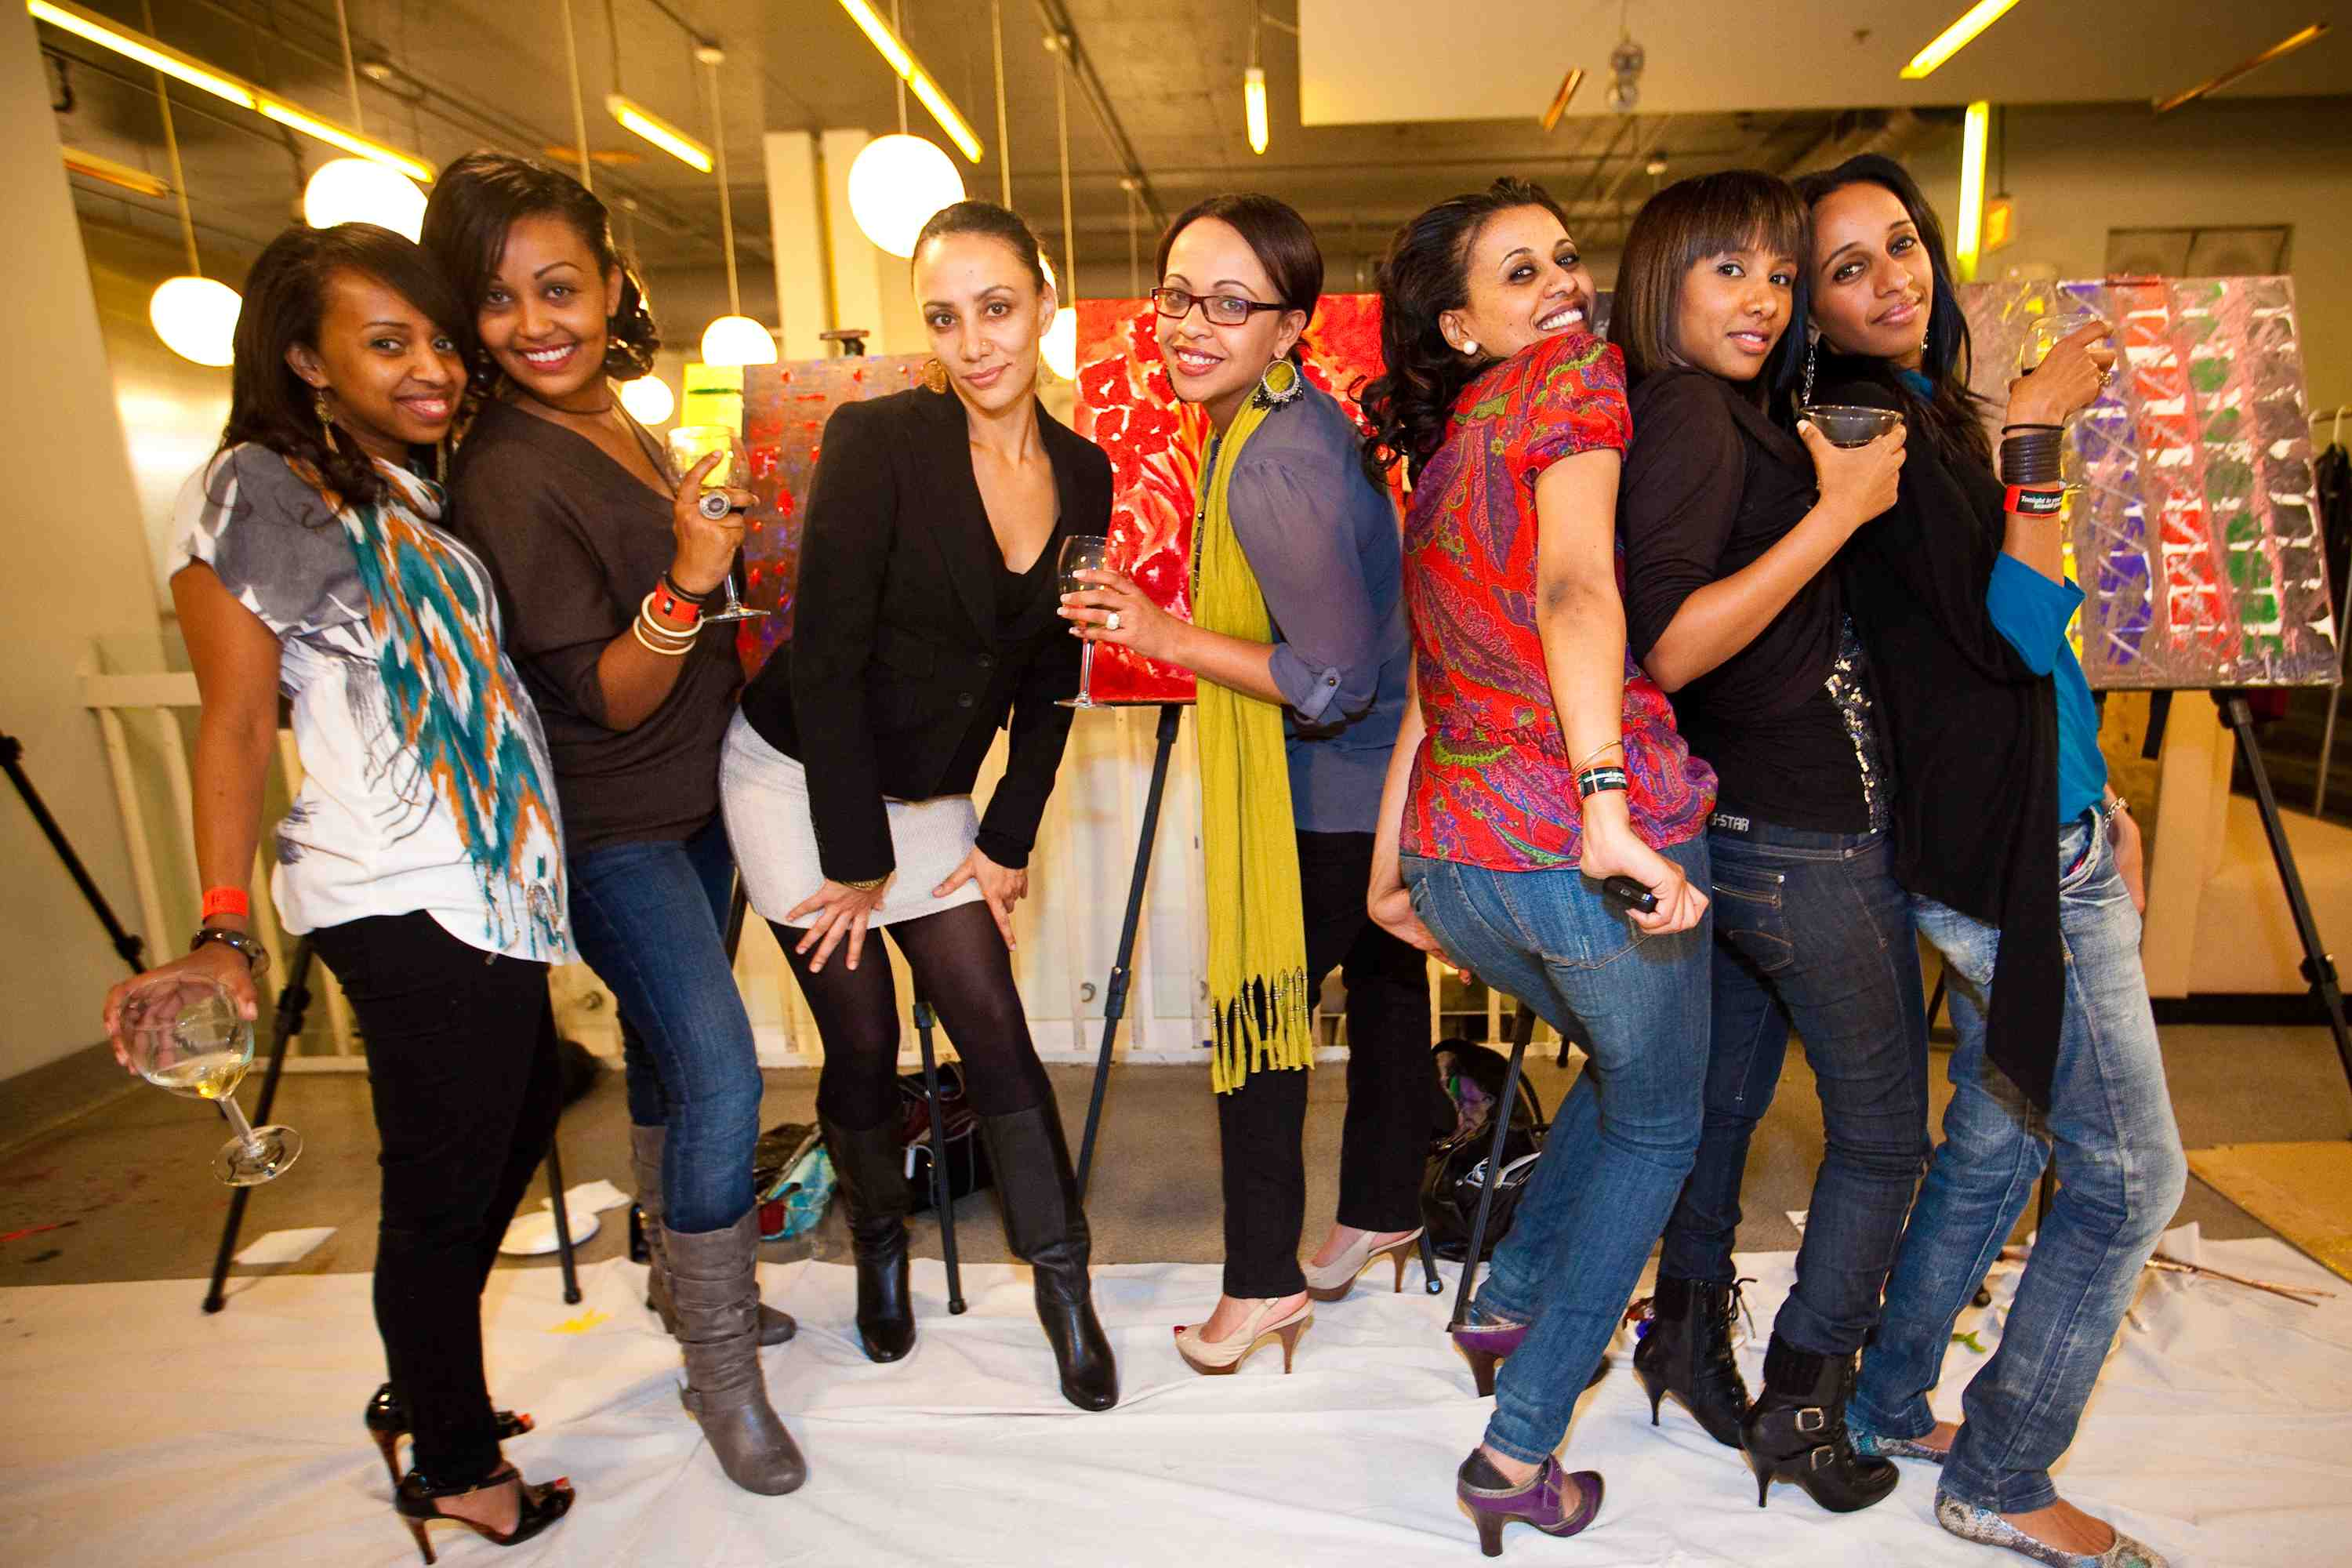 Paint and Sip Team Building Art Party Ideas and Office Party